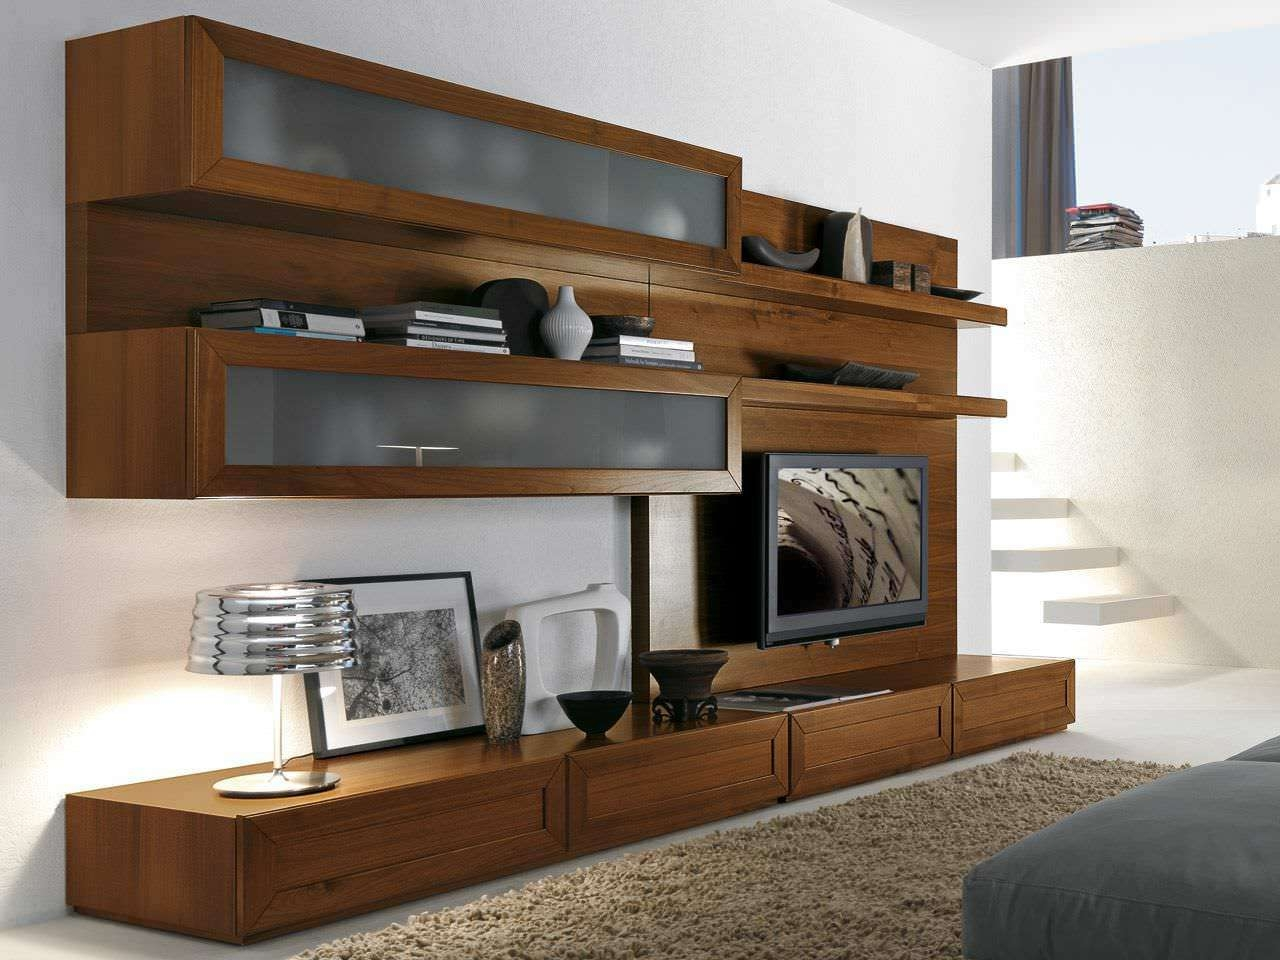 Tv Wall Units Cabinets – Wall Units Design Ideas : Electoral7 In Full Wall Tv Cabinets (View 9 of 20)